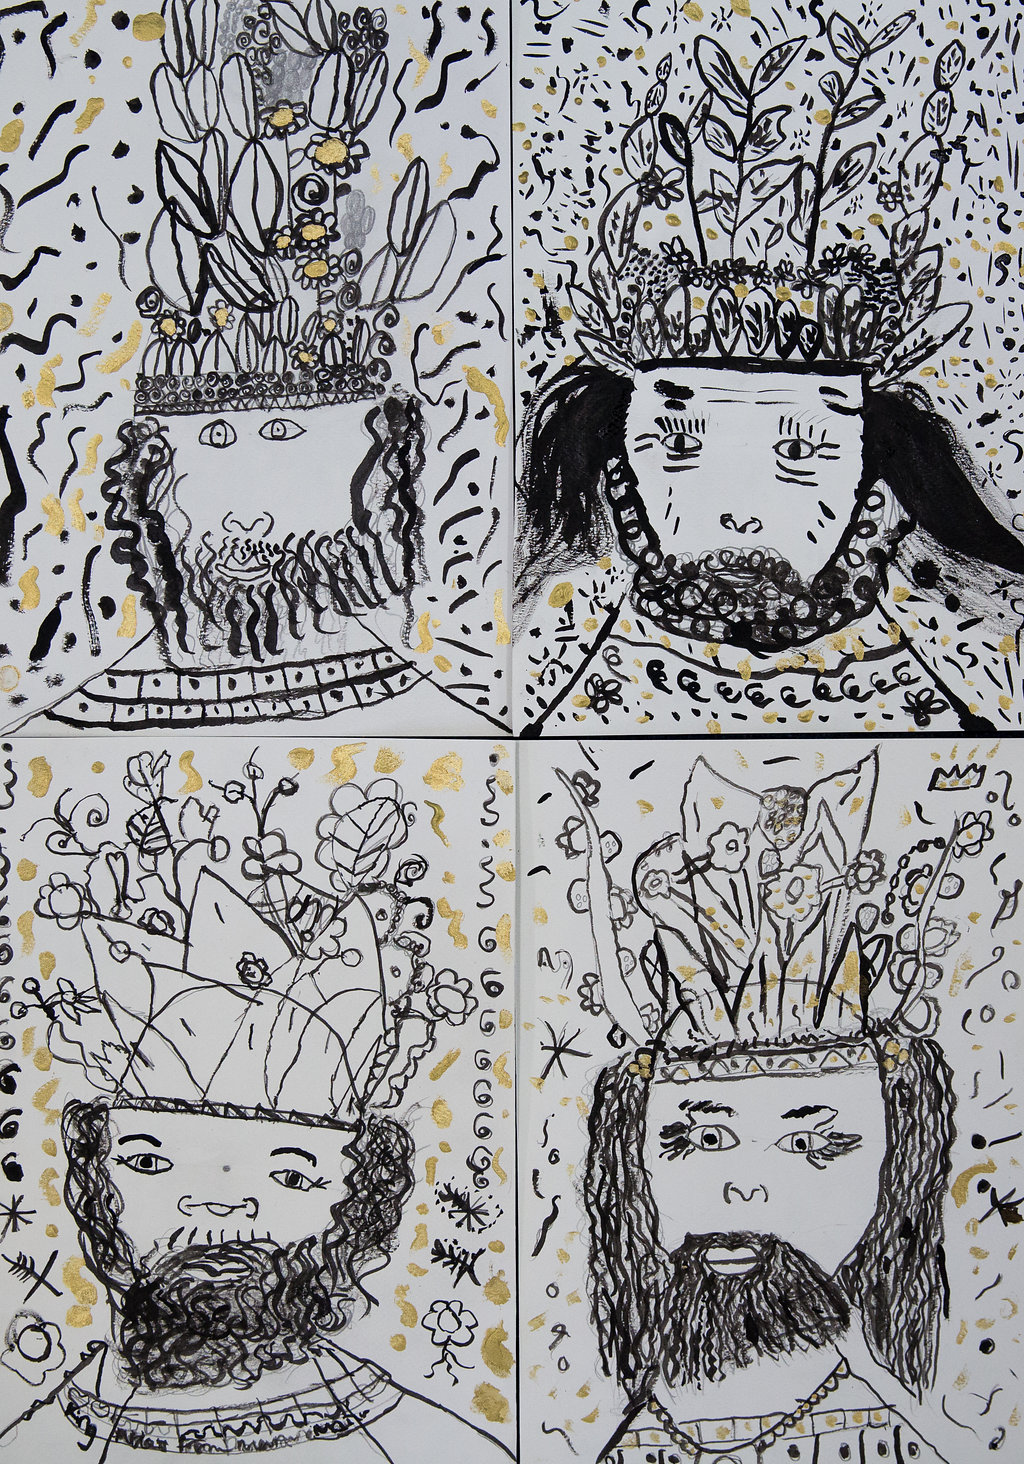 King Midas Brush and Ink by Y2 - Yeading Infants and Nursery School Hillingdon